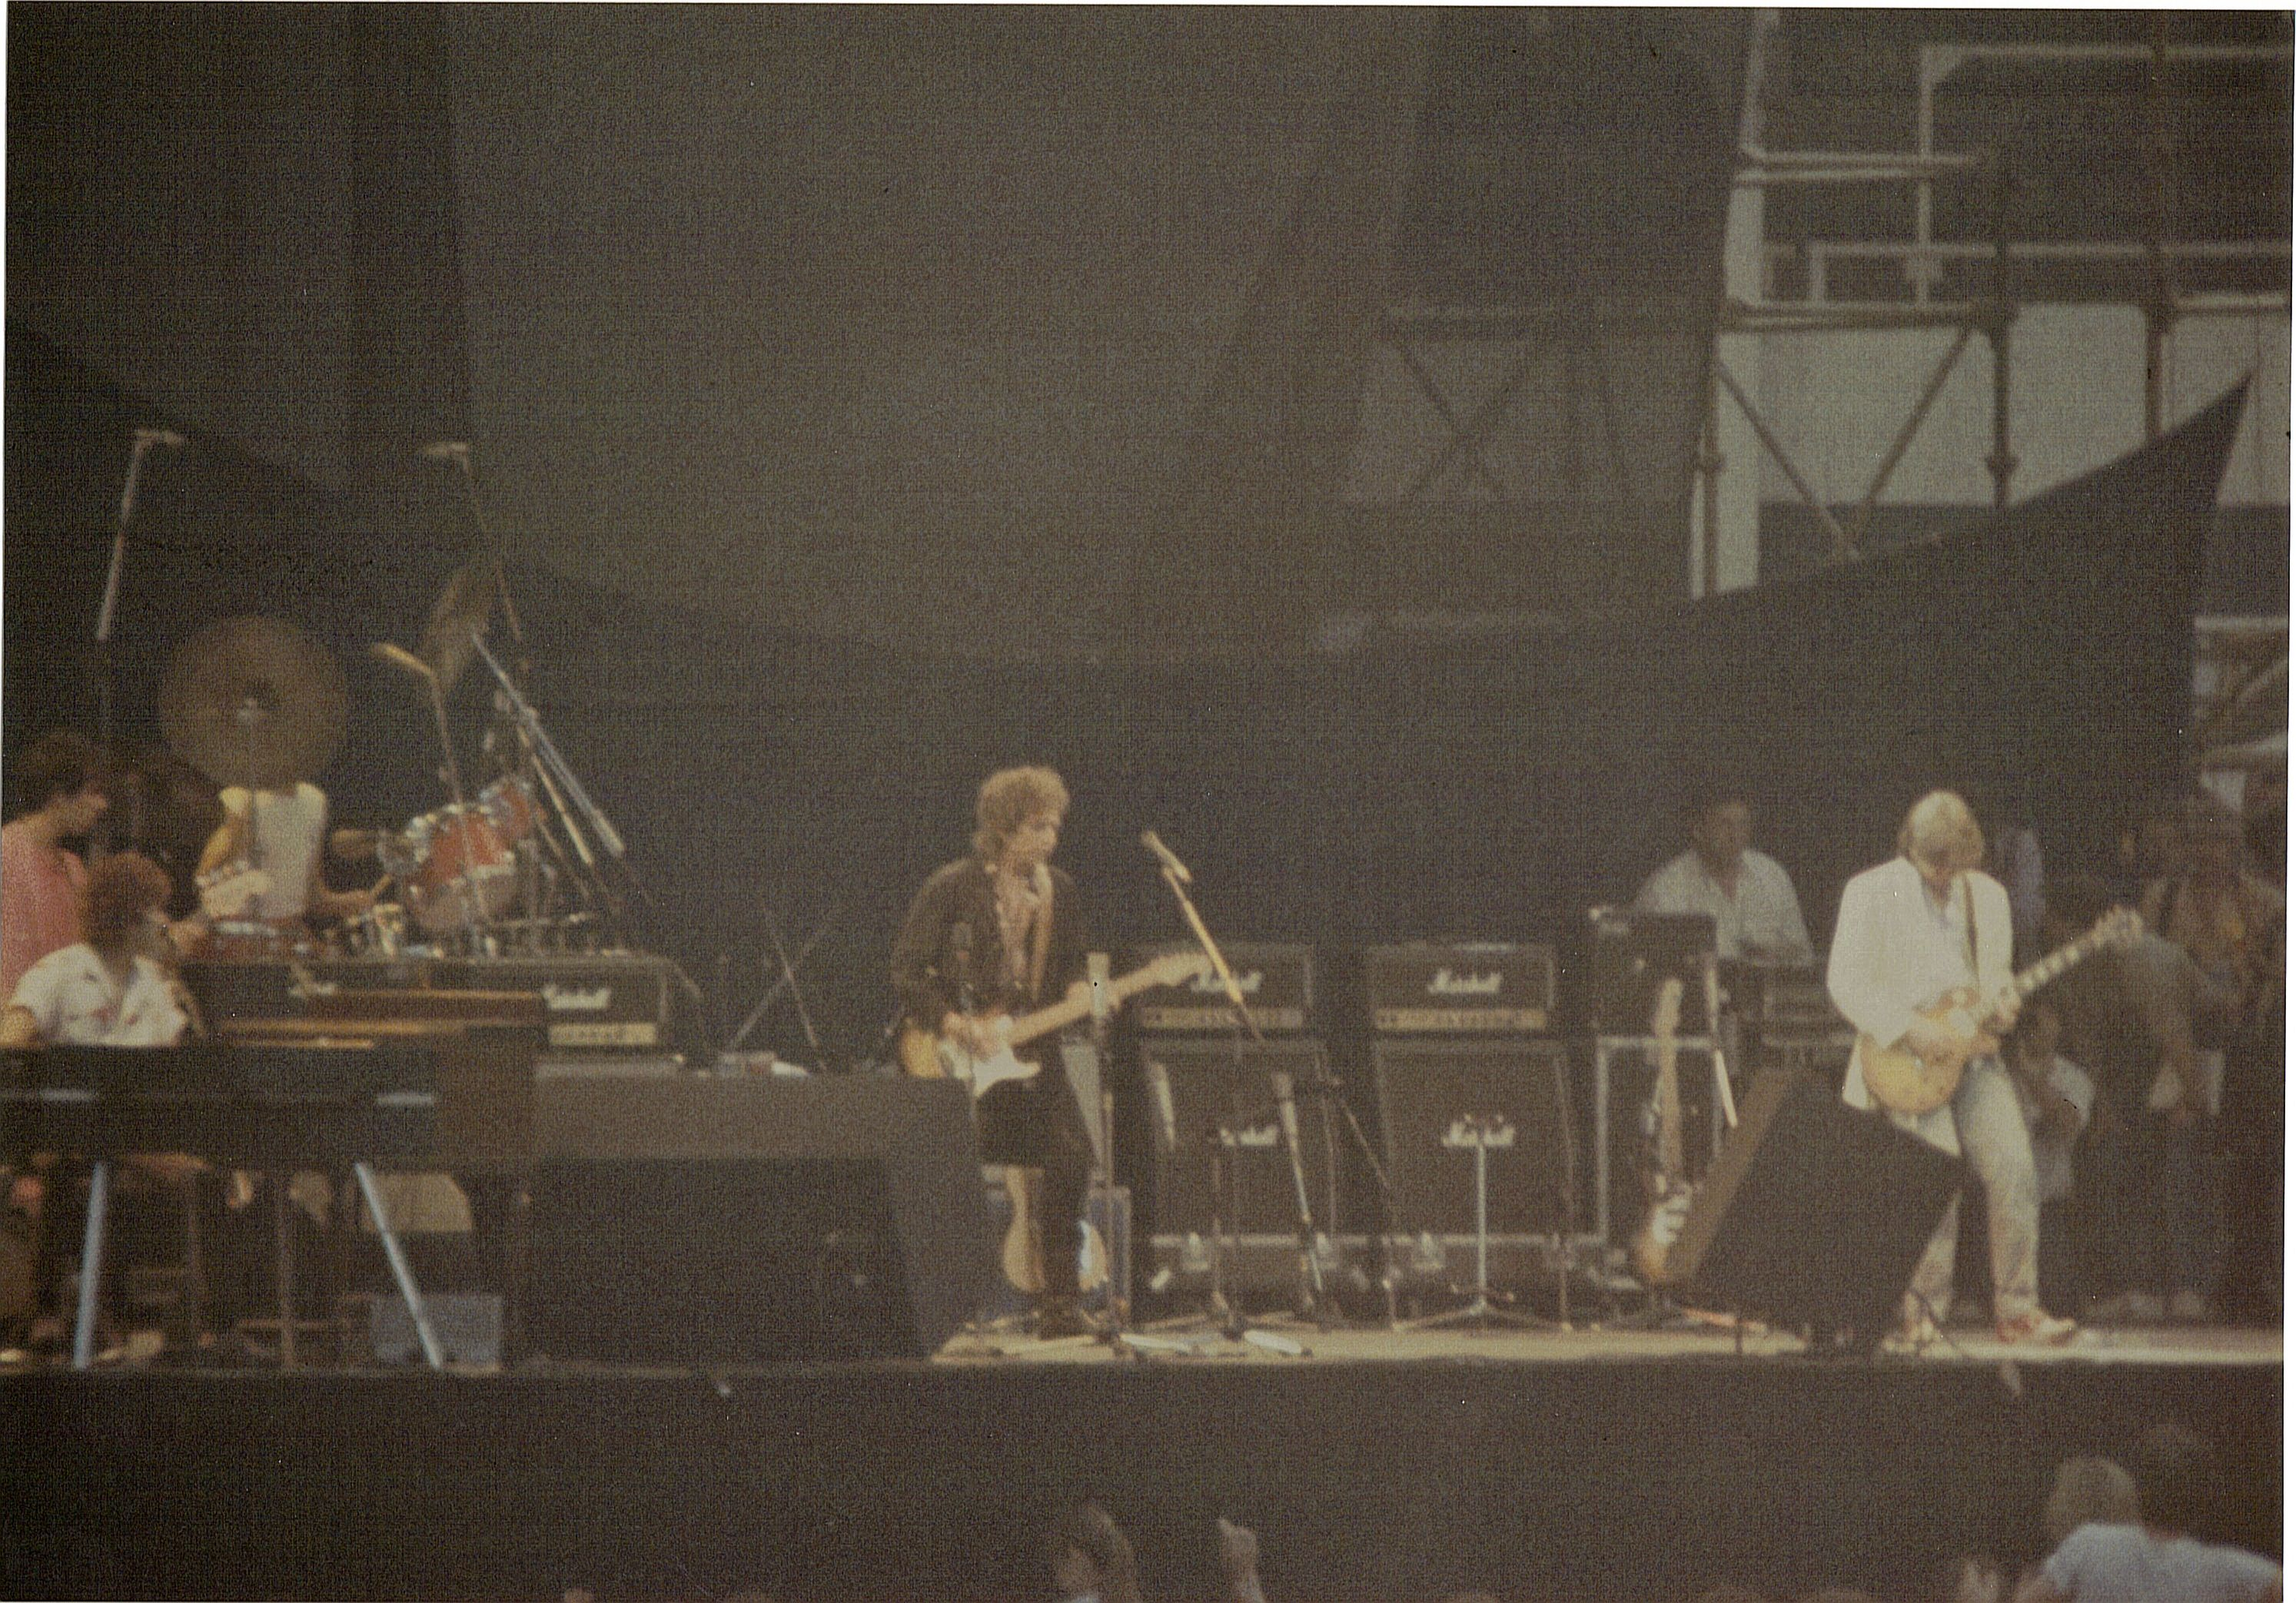 Bob Dylan and the Rolling Thunder Revue 1983 at Wembley